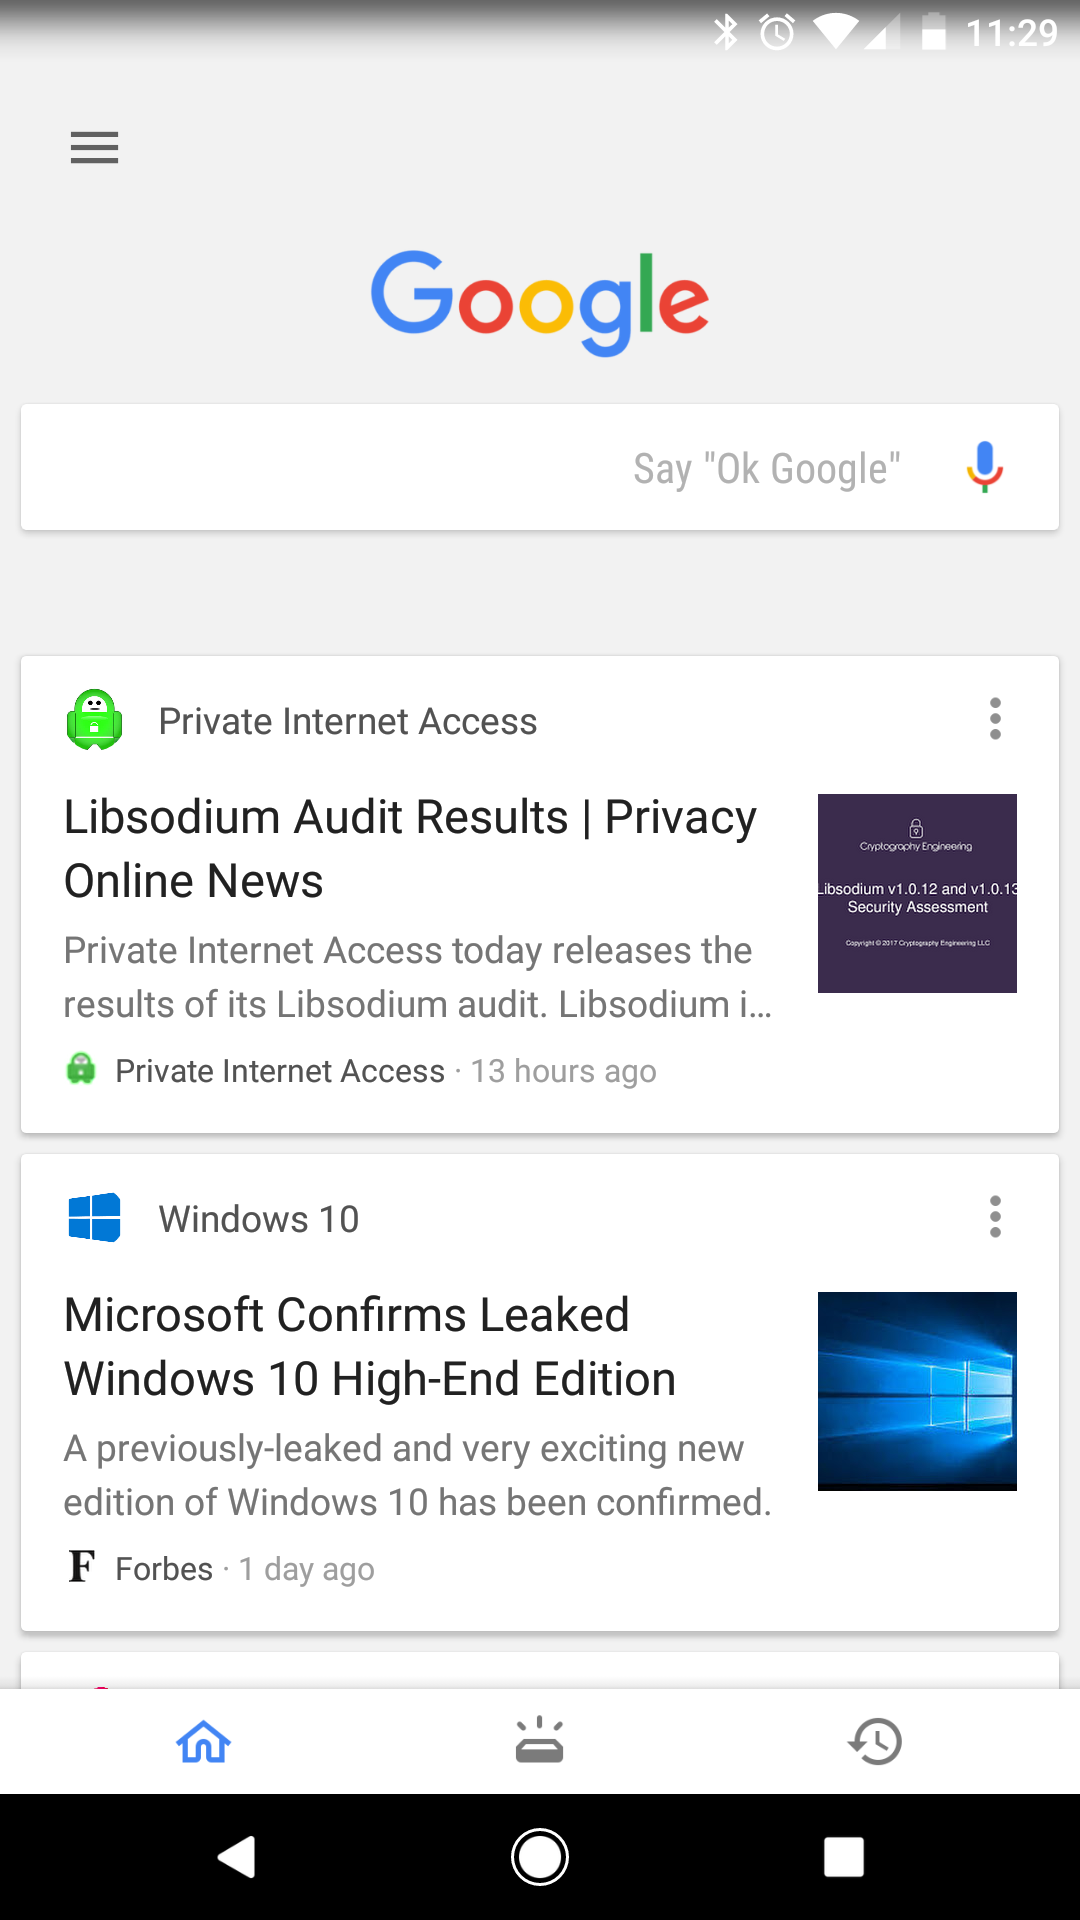 Google is rolling out the tabbed Google app interface to